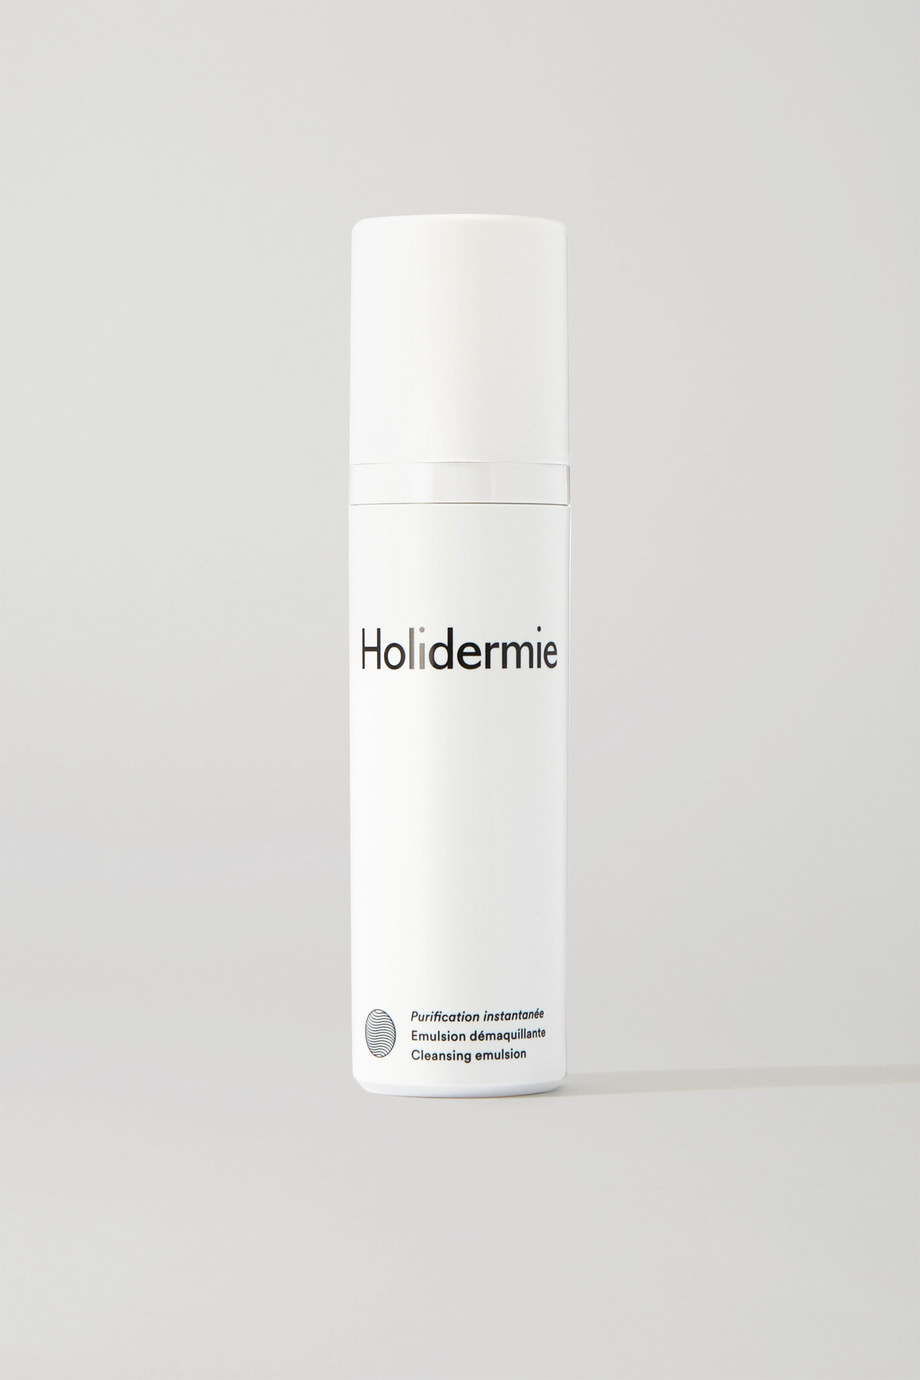 Holidermie Purification Instantanée Cleansing Emulsion, 75ml